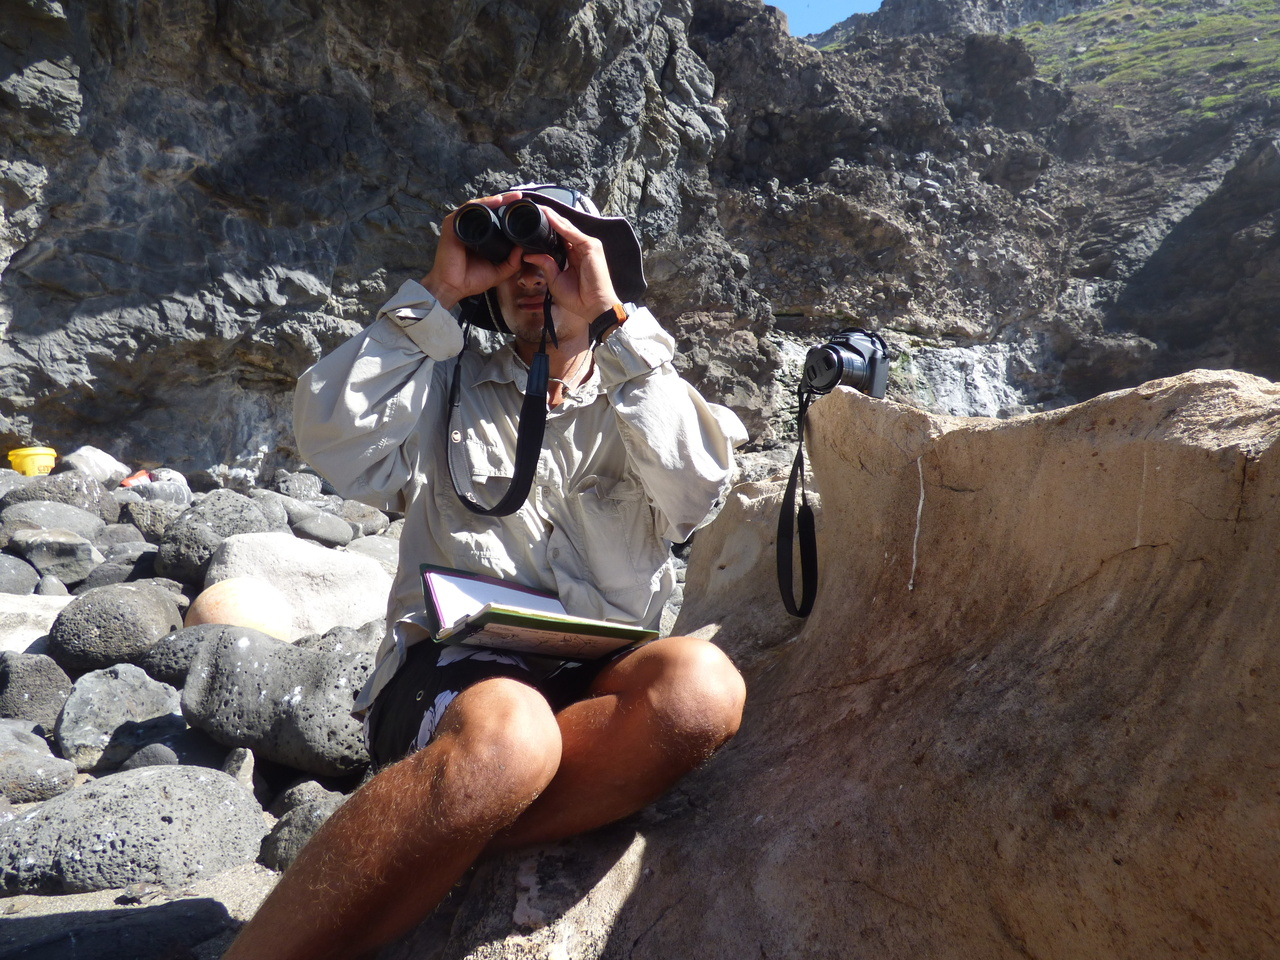 Field Researcher Keelan Barcina searches for monk seals along the shores of Nihoa Island.